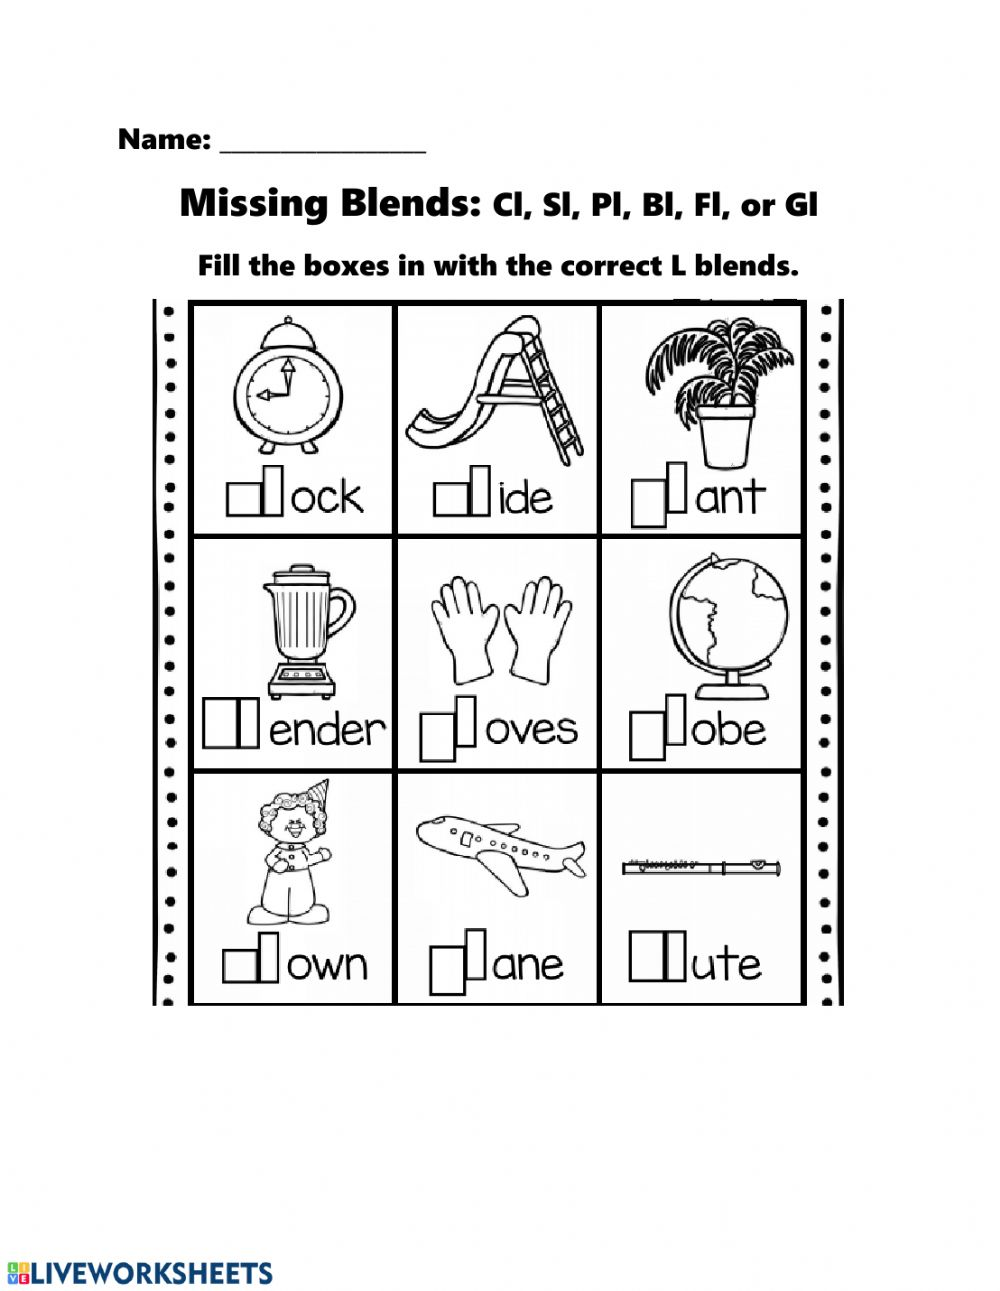 hight resolution of Missing L Blends worksheet